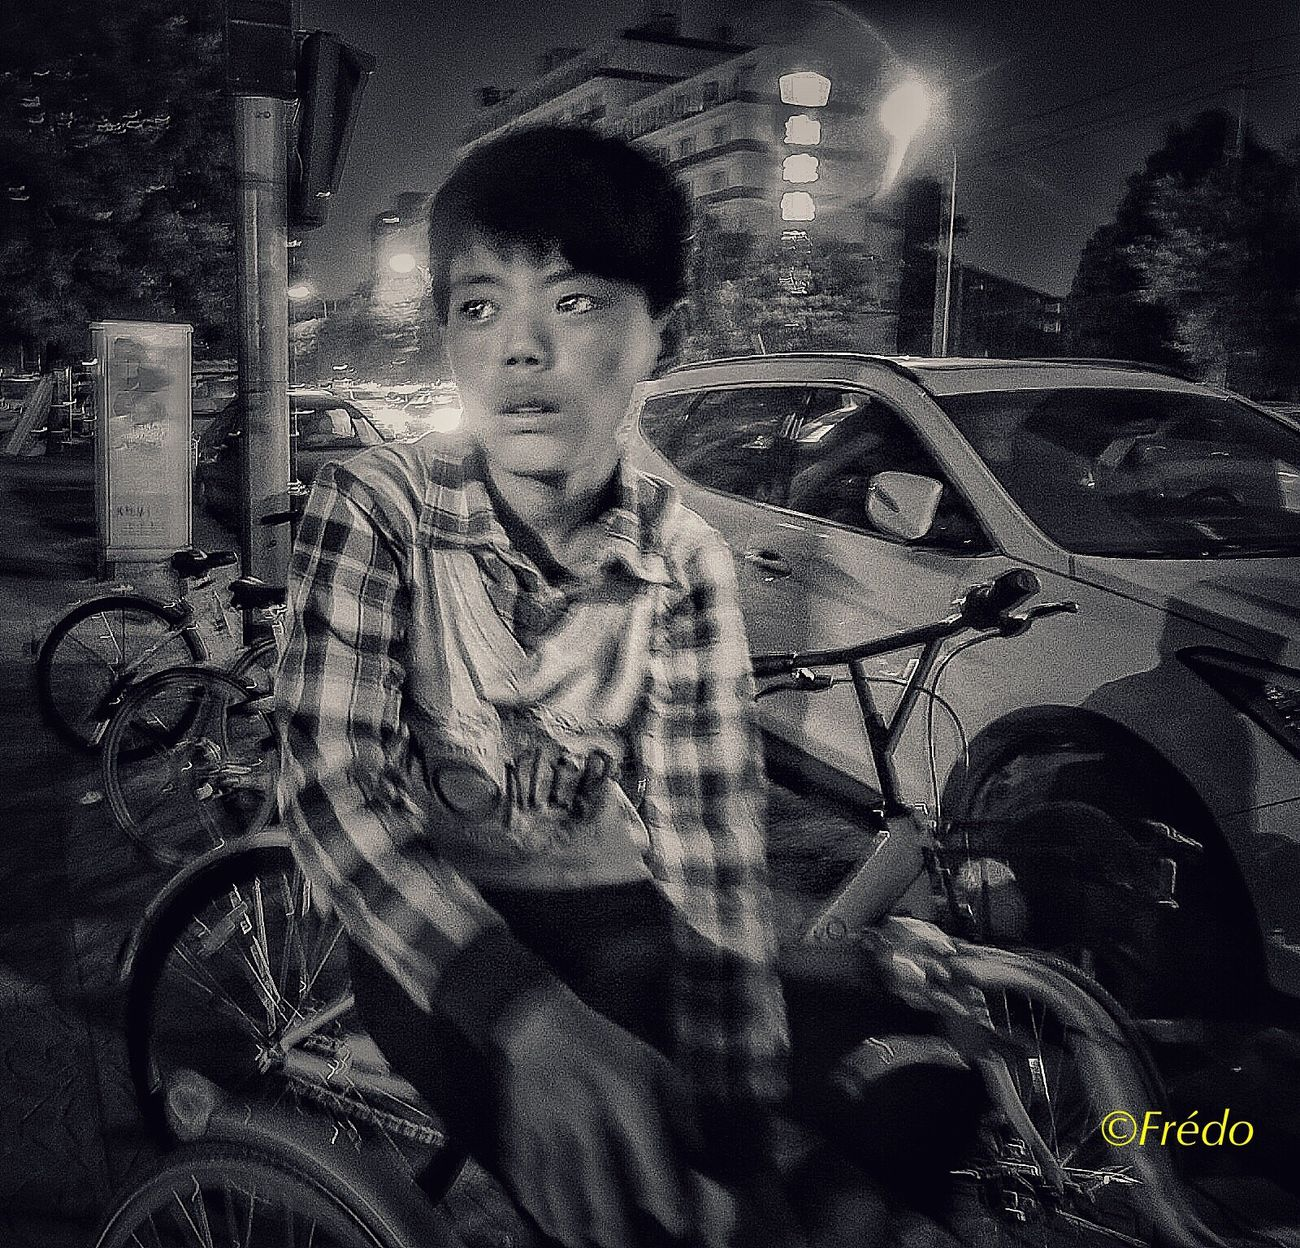 Le jeune garçon dans la nuit de Pékin. Transportation Real People Mode Of Transport One Person Street Young Adult Night Monochrome _ Collection Monochrome Photography Eyem Gallery Photooftheday Photo Of The Day Beijing, China Eyem In Beijing BEIJING北京CHINA中国BEAUTY The Street Photographer - 2017 EyeEm Awards Street Photos😄📷🏫⛪🚒🚐🚲⚠ Eyeemphotography Summer2017🌞 Streetphotography EyeEm Best Shots Photography Portrait Street Photo Portrait Photography